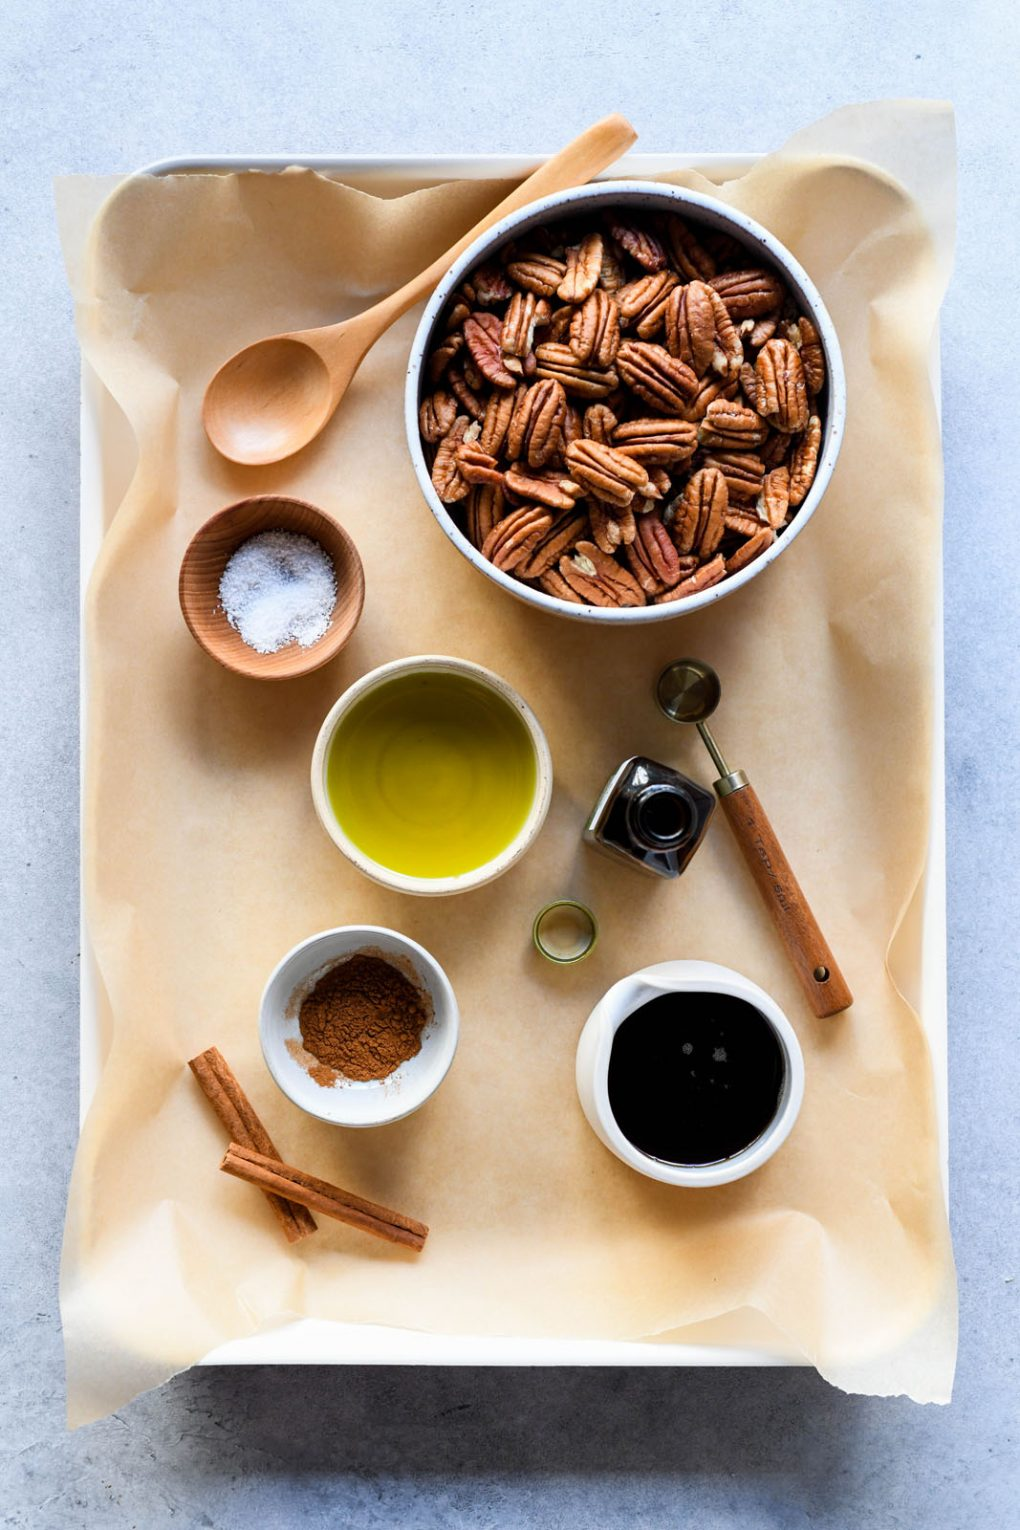 Overhead view of a baking sheet lined with parchment paper, filled with the ingredients for candied pecans in small dishes - raw pecans, sea salt, avocado oil, cinnamon, maple syrup, and vanilla extract.